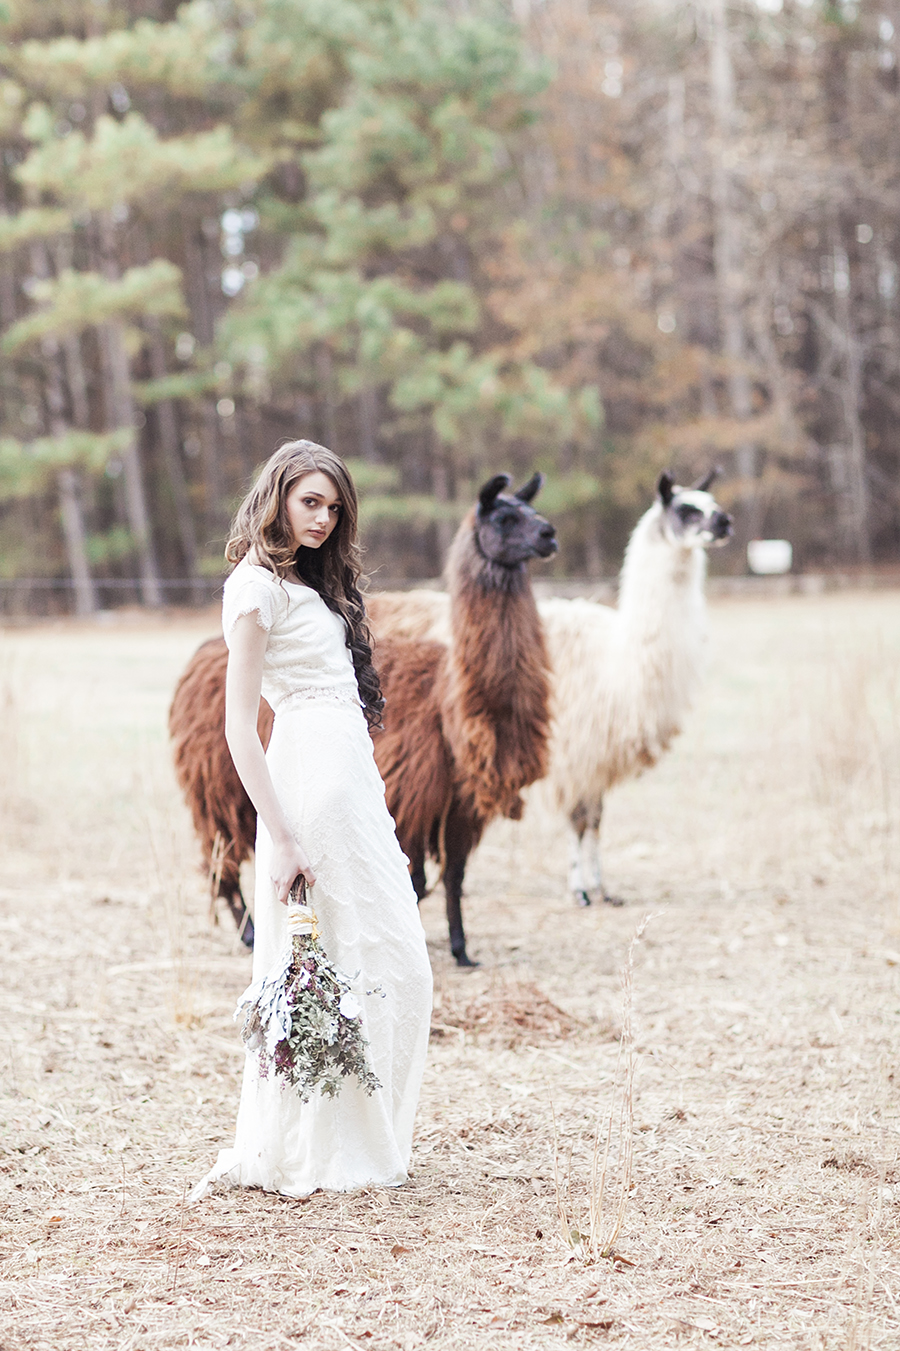 sleepy-fox-photography-daughters-of-simone-bridal-gown-styled-shoot-chelsea-and-the-city-boho-wedding-inspiration- (416).jpg